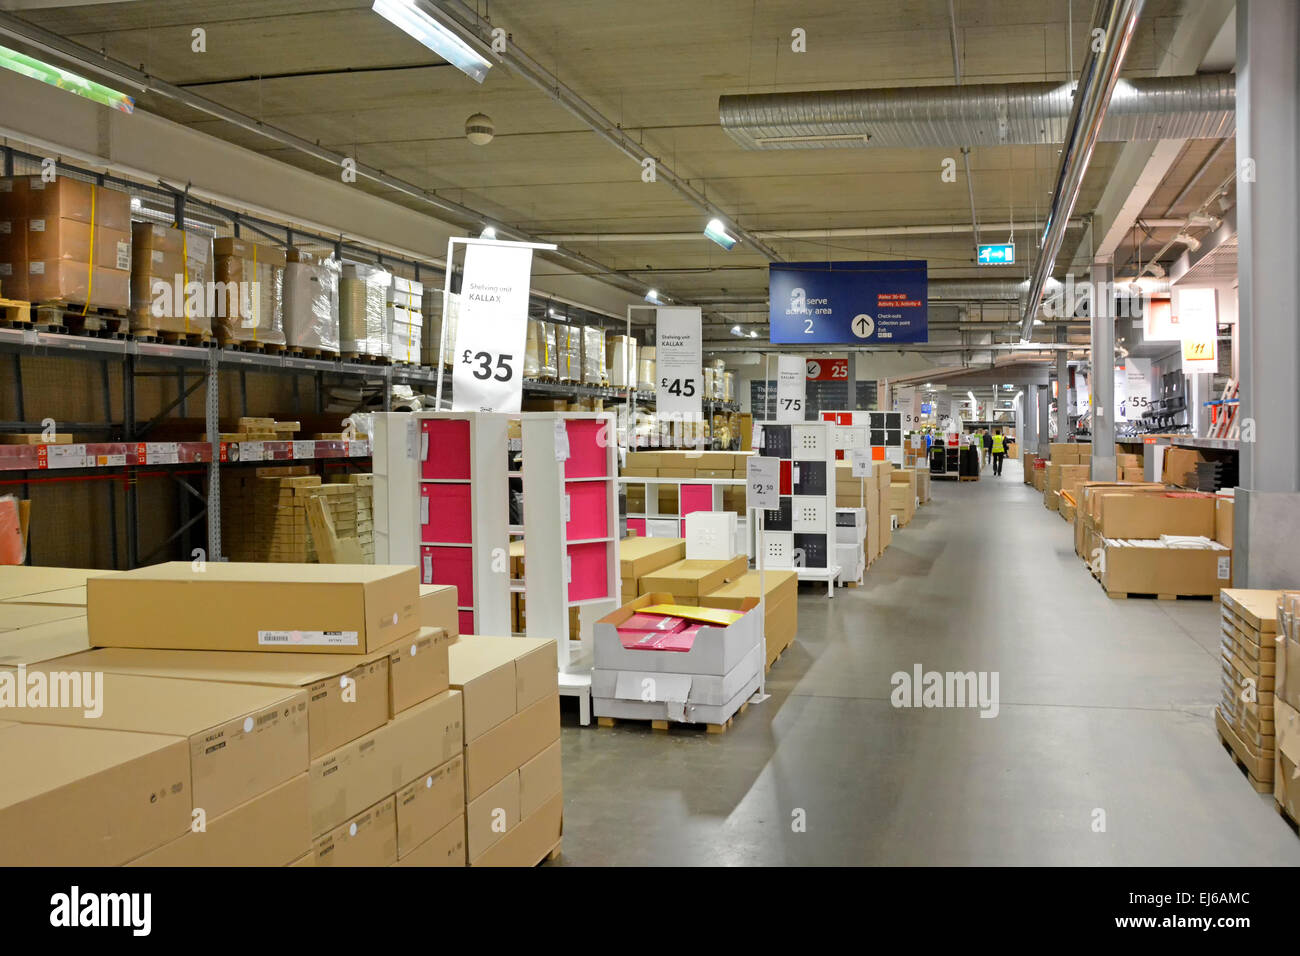 ground floor warehouse customer collection areas in ikea store in the stock photo 80045404 alamy. Black Bedroom Furniture Sets. Home Design Ideas